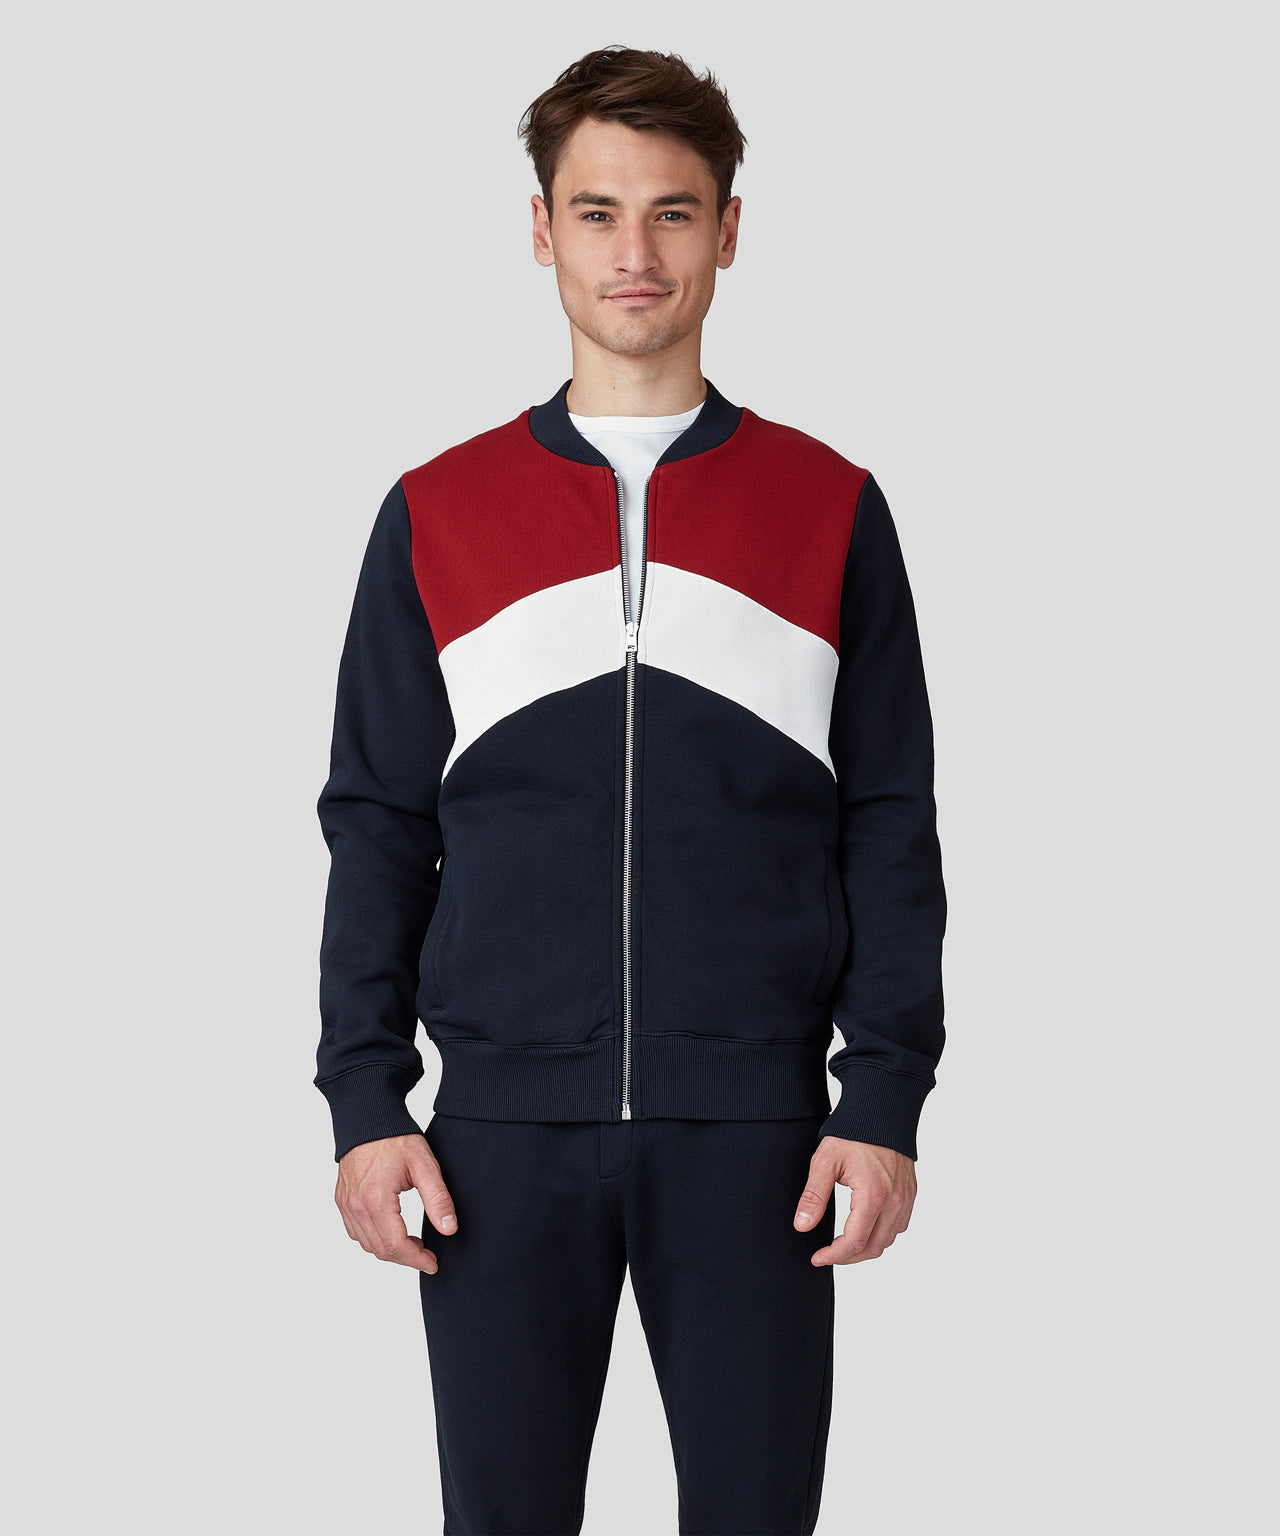 Chevron Tennis Jacket - falun red